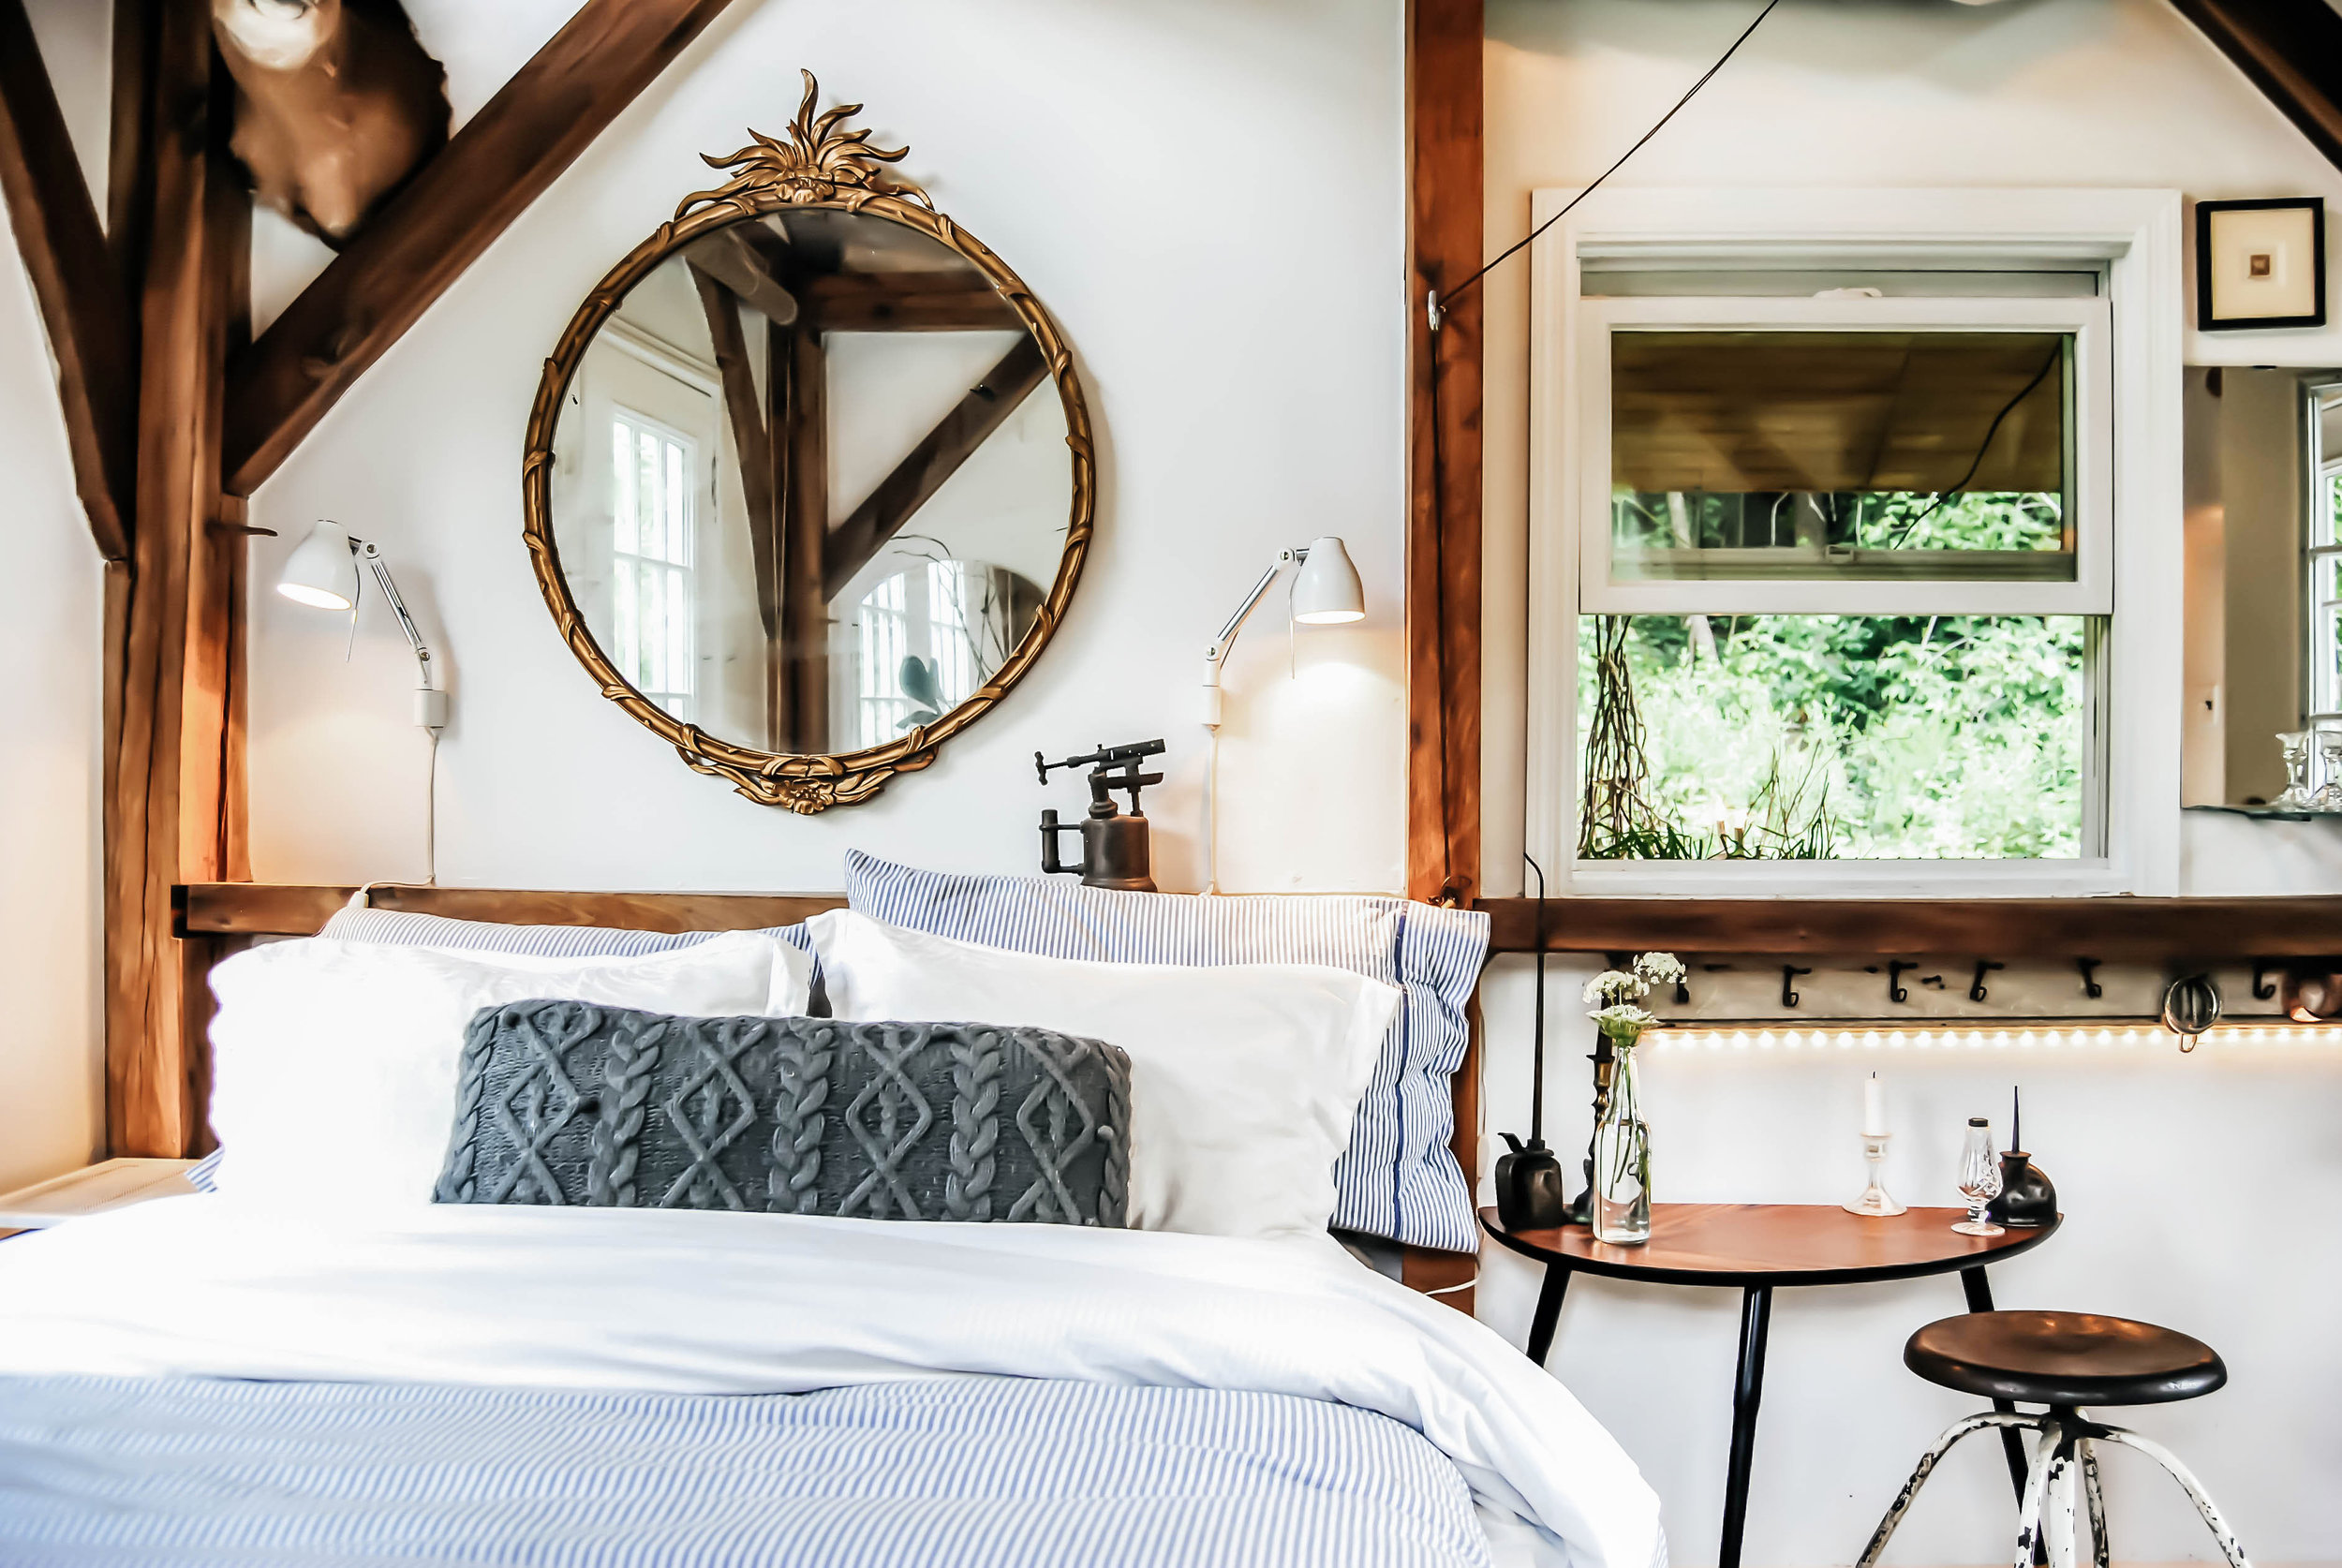 Bed area in tiny house with ornate metal mirror hanging over bed